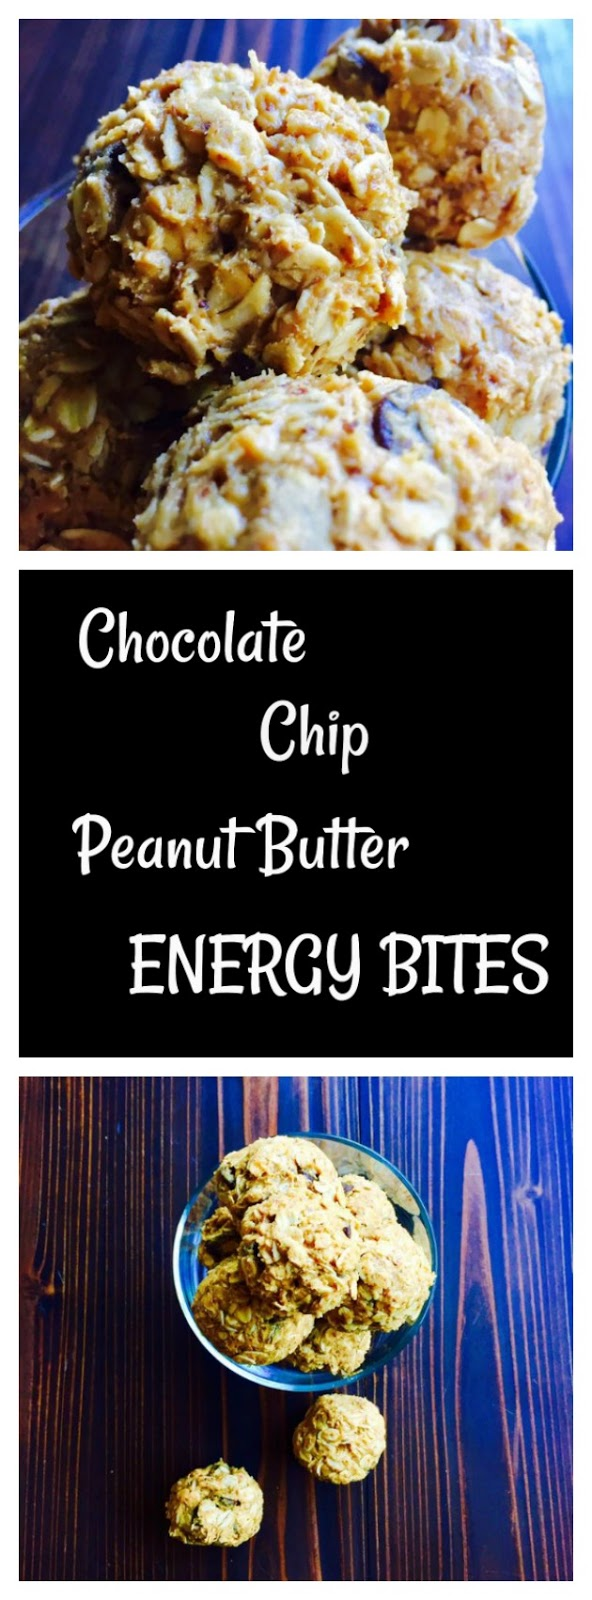 Chocolate Chip Peanut Butter Energy Bites